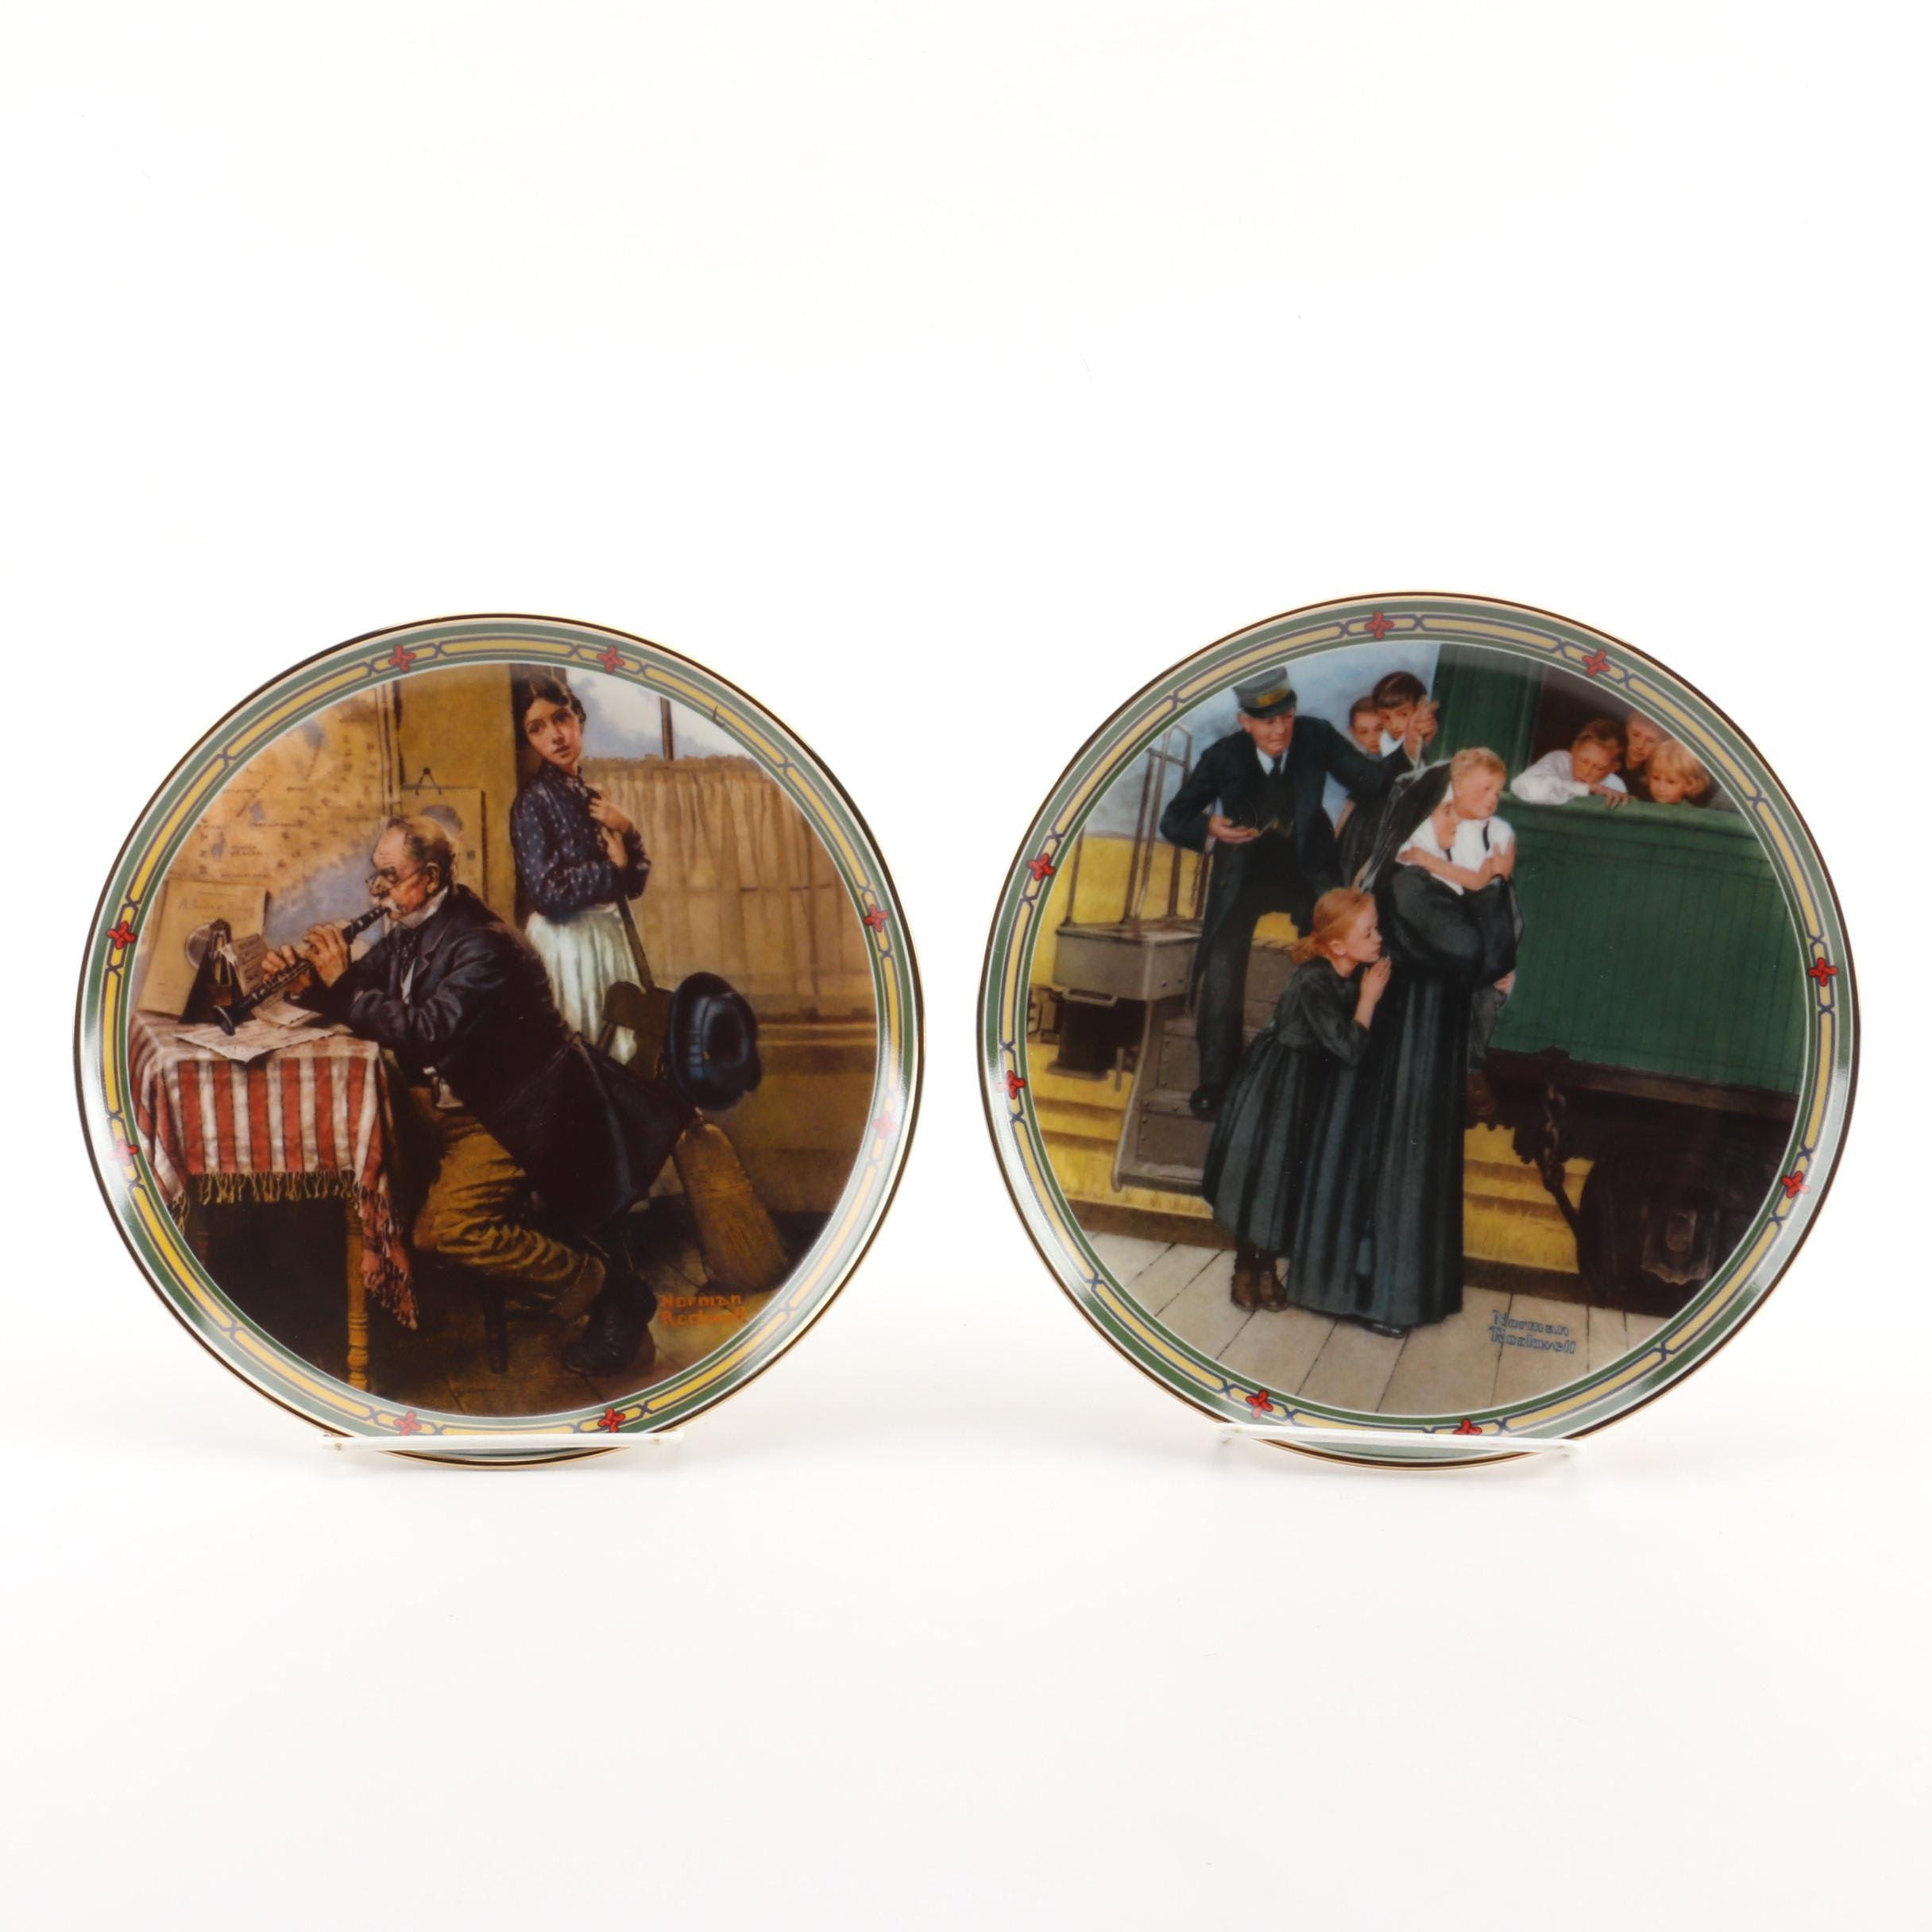 Norman Rockwell Plates by Edwin Knowles China Co.